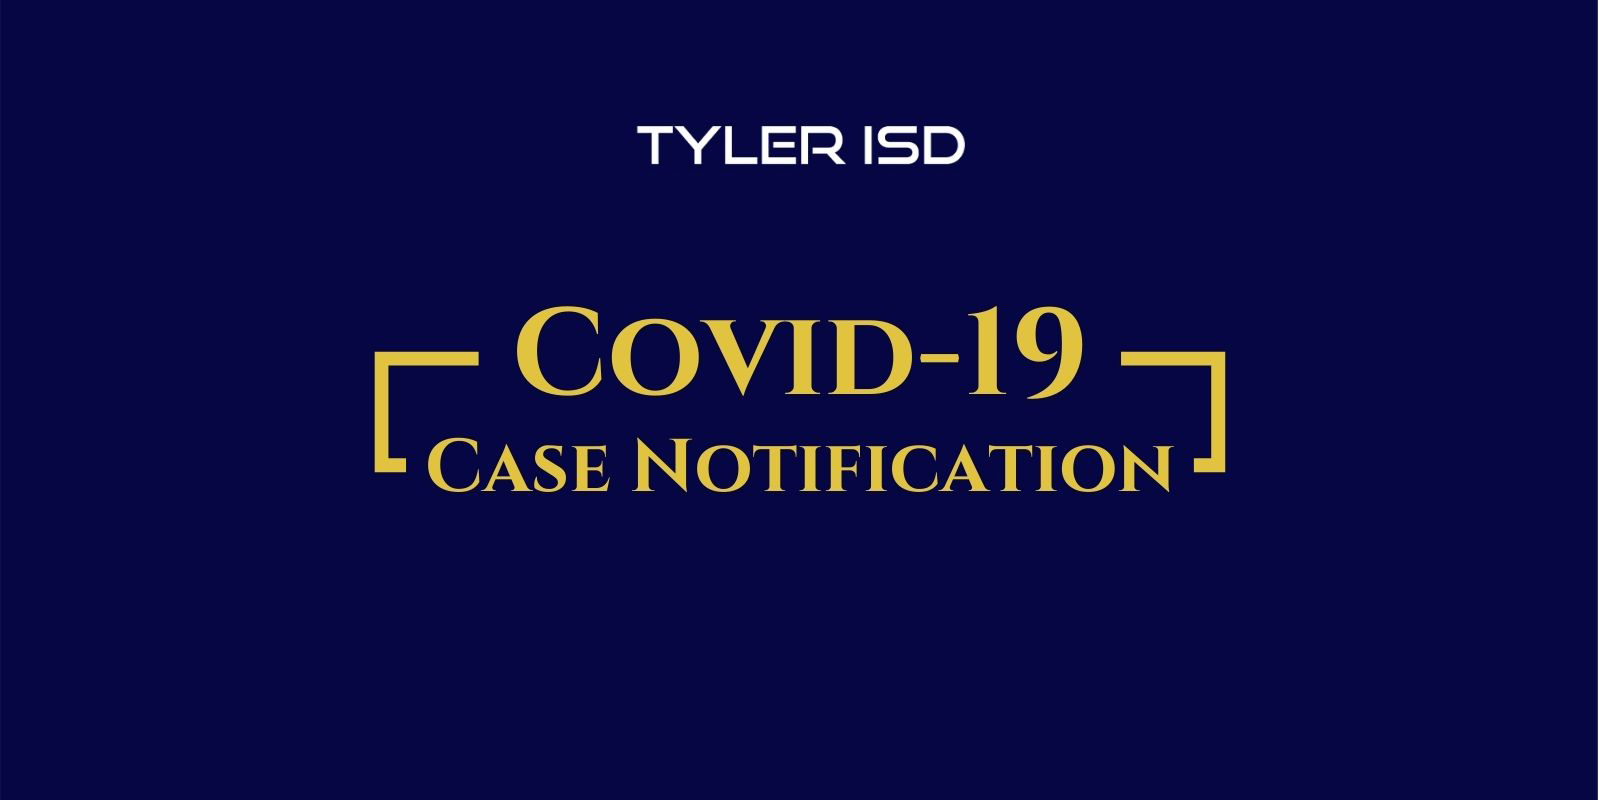 COVID-19 Case Notification